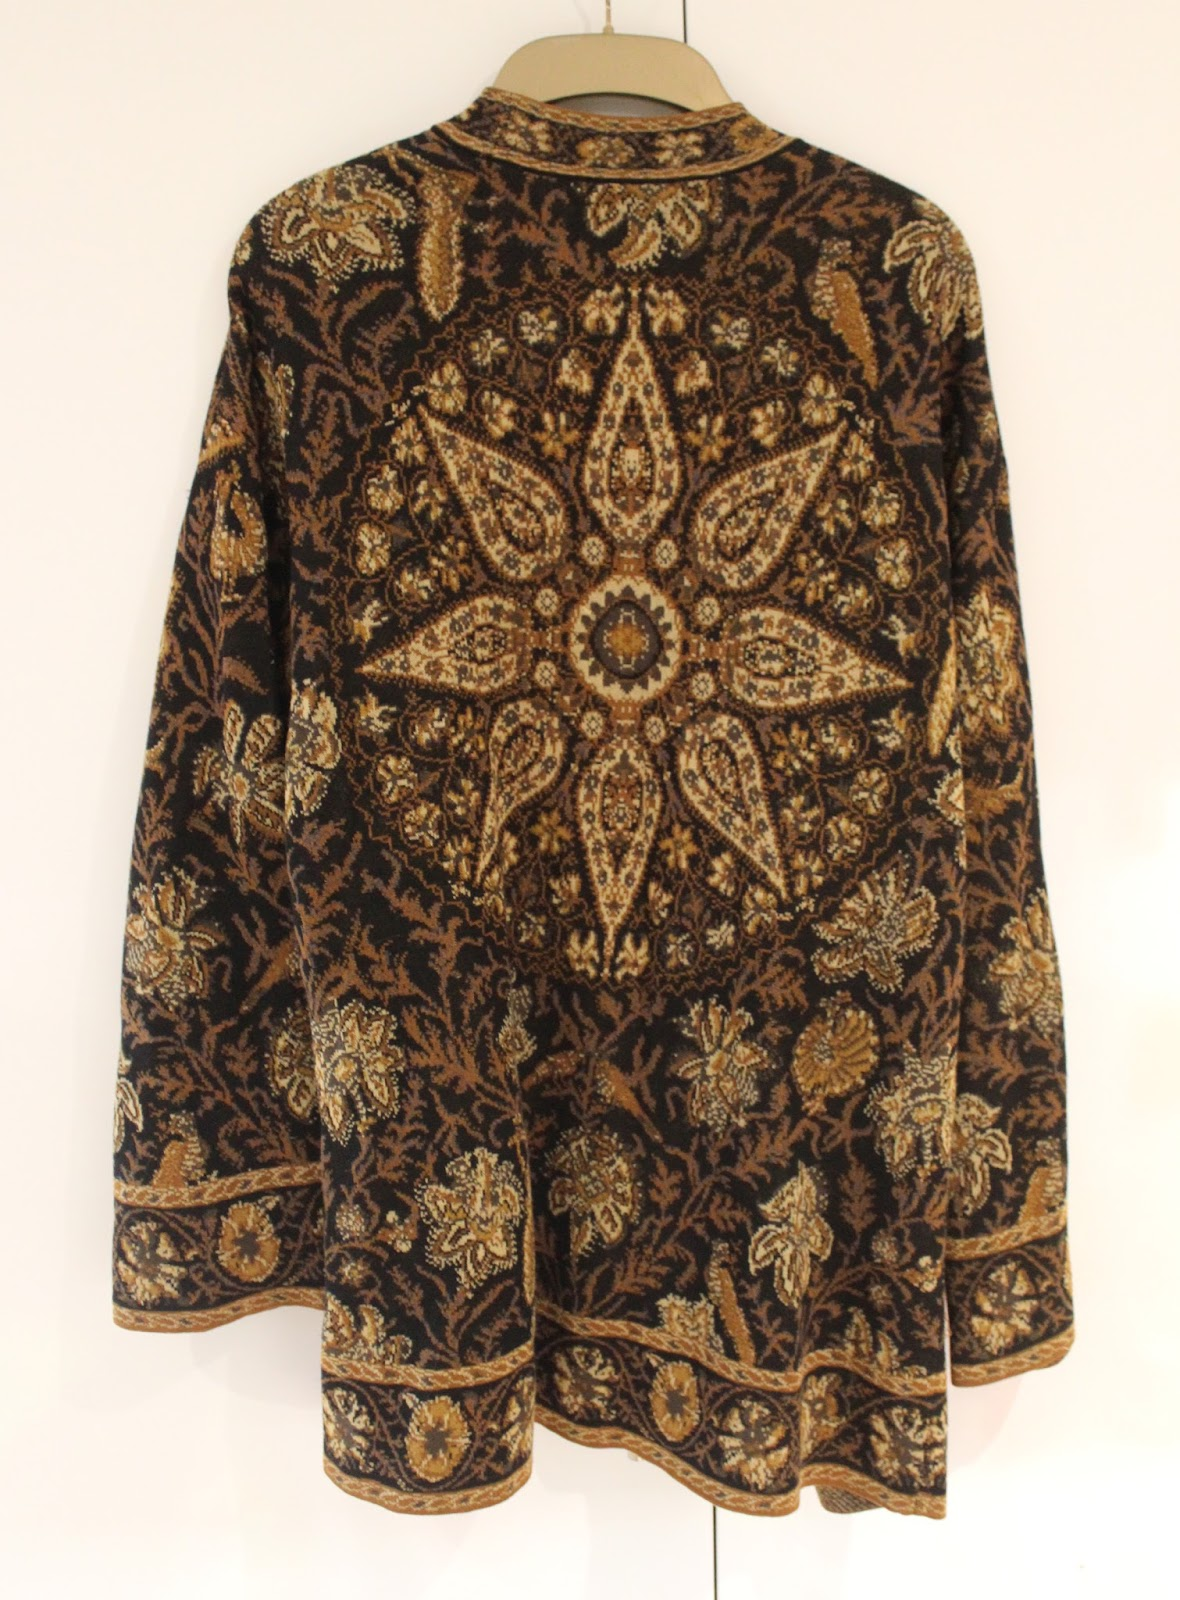 Peruvian Connection Cardigan - £80